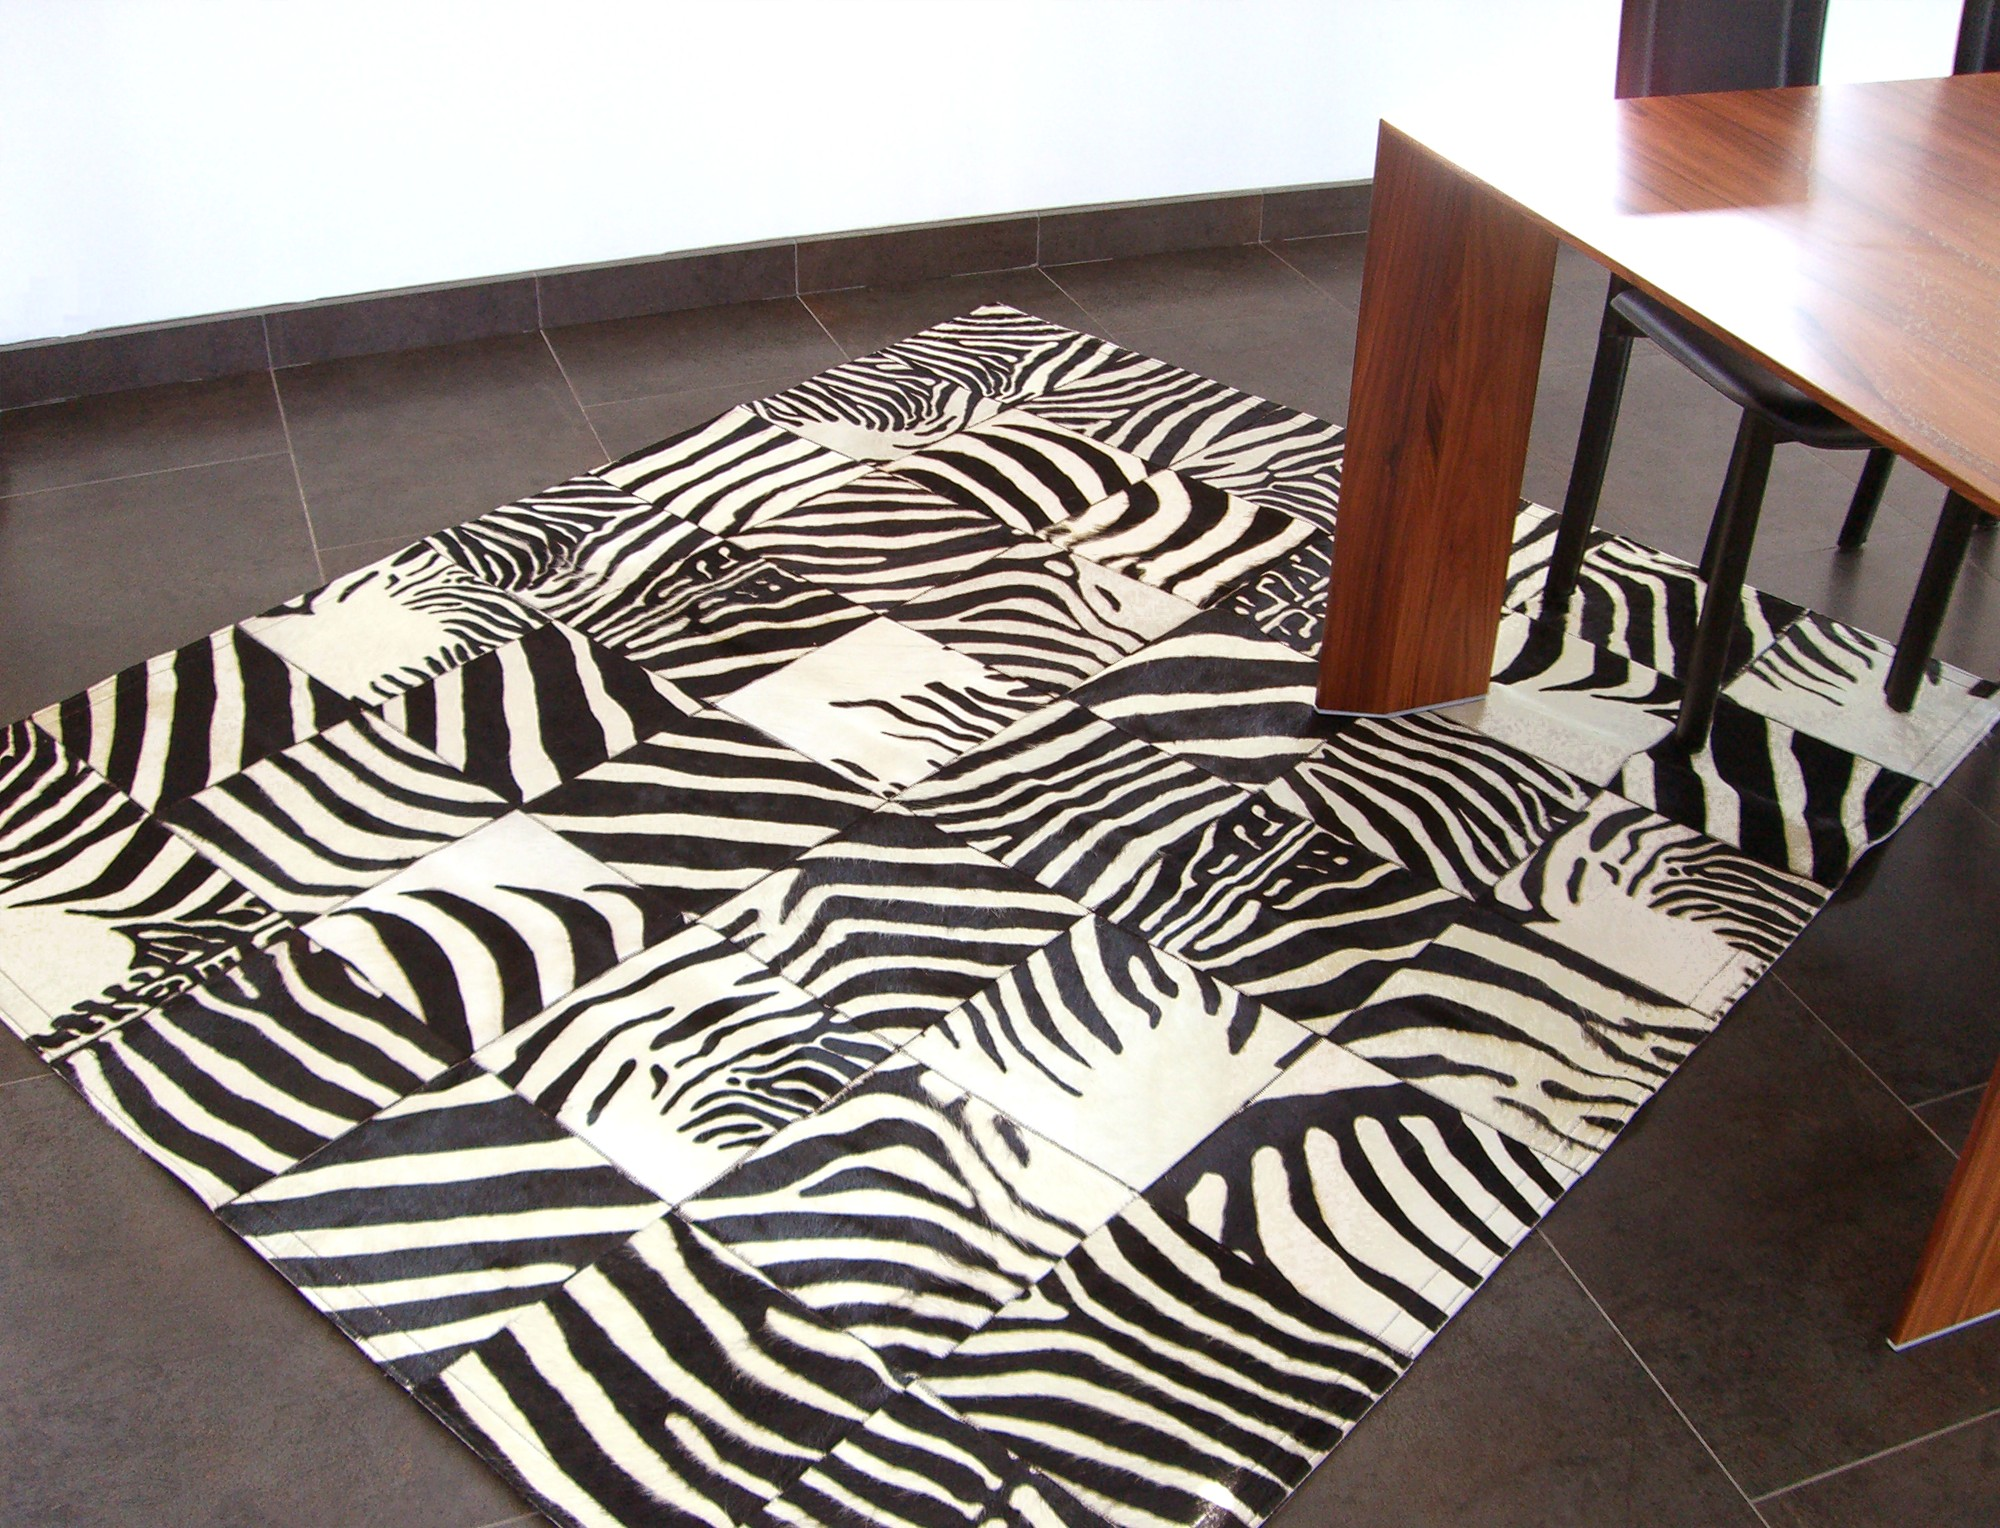 tapis patchwork en peau de vache z br e. Black Bedroom Furniture Sets. Home Design Ideas